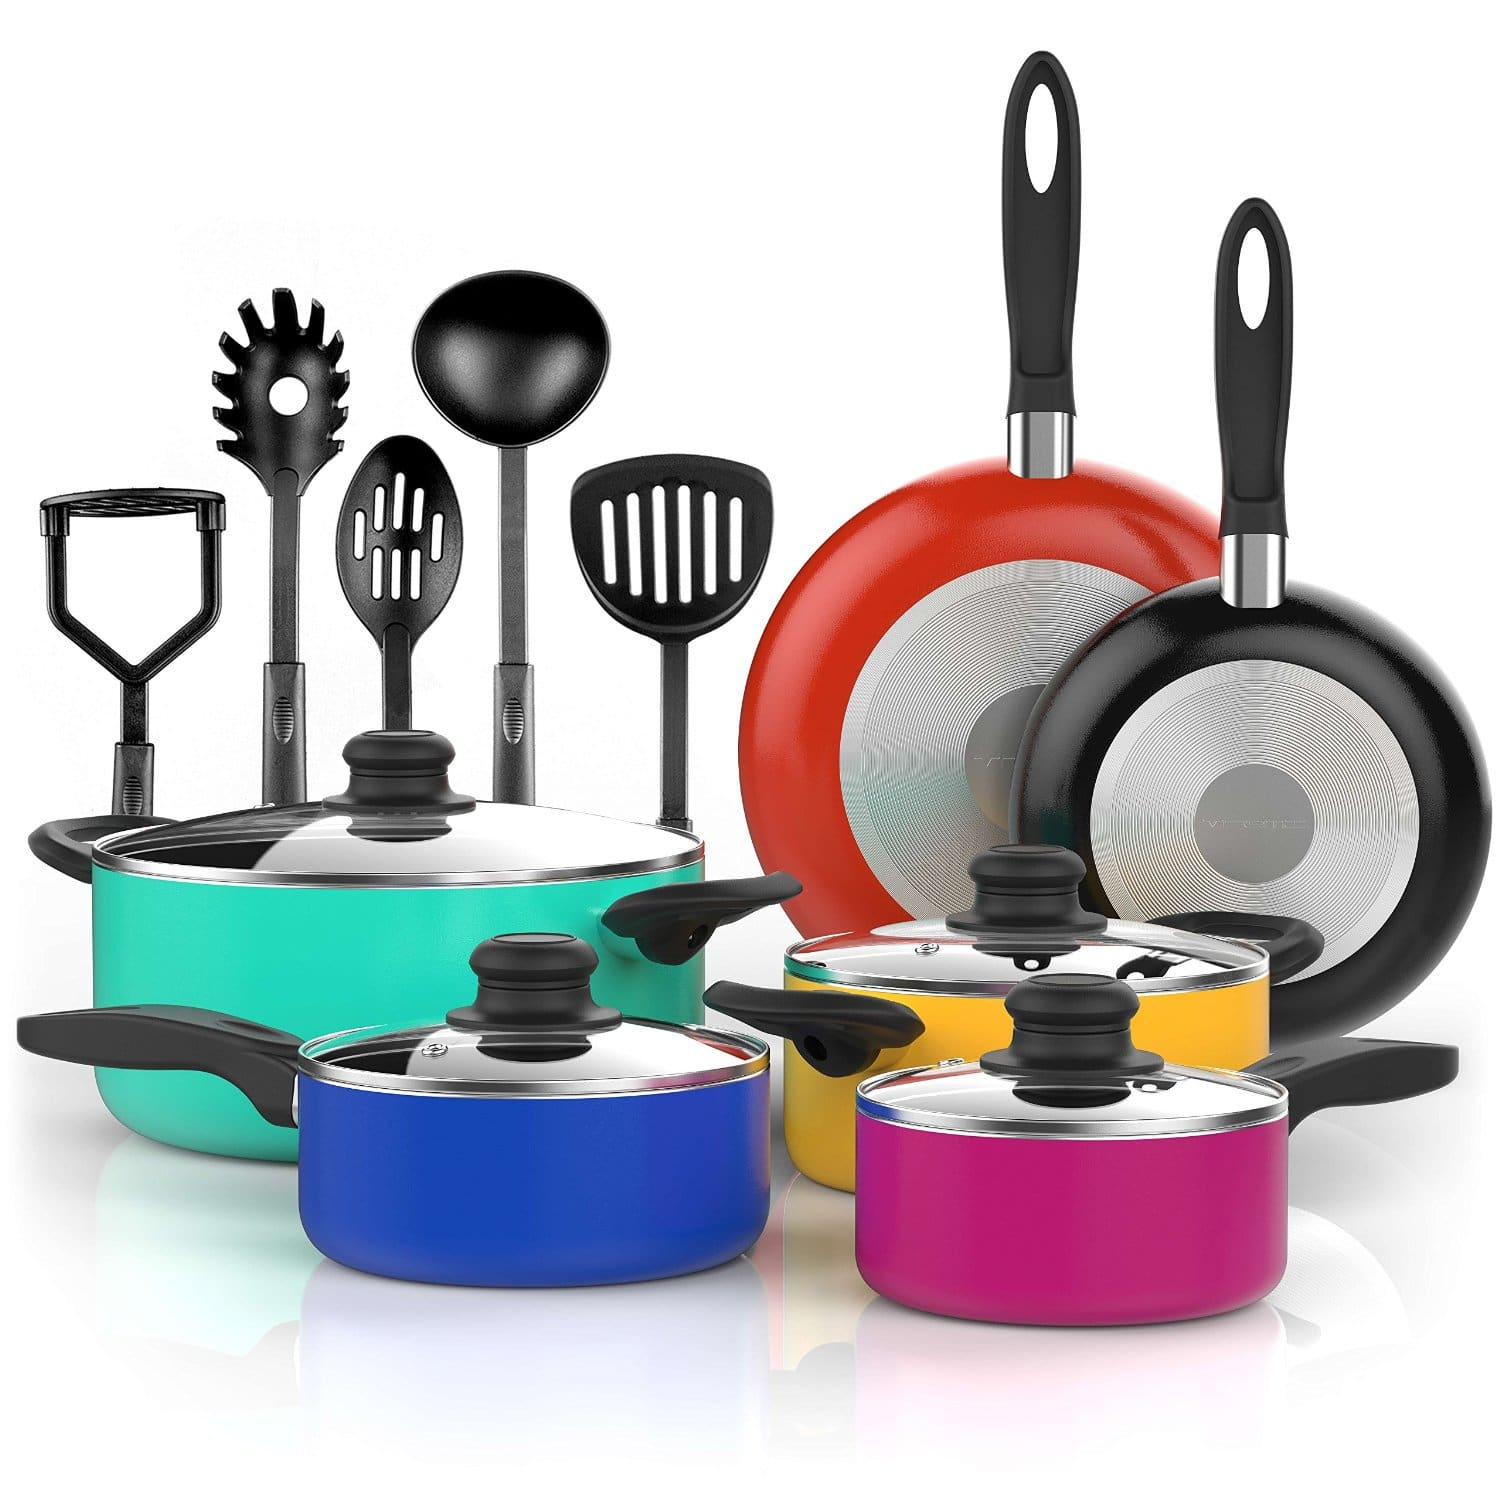 Top 10 Best Cookware Sets In 2018 Reviews